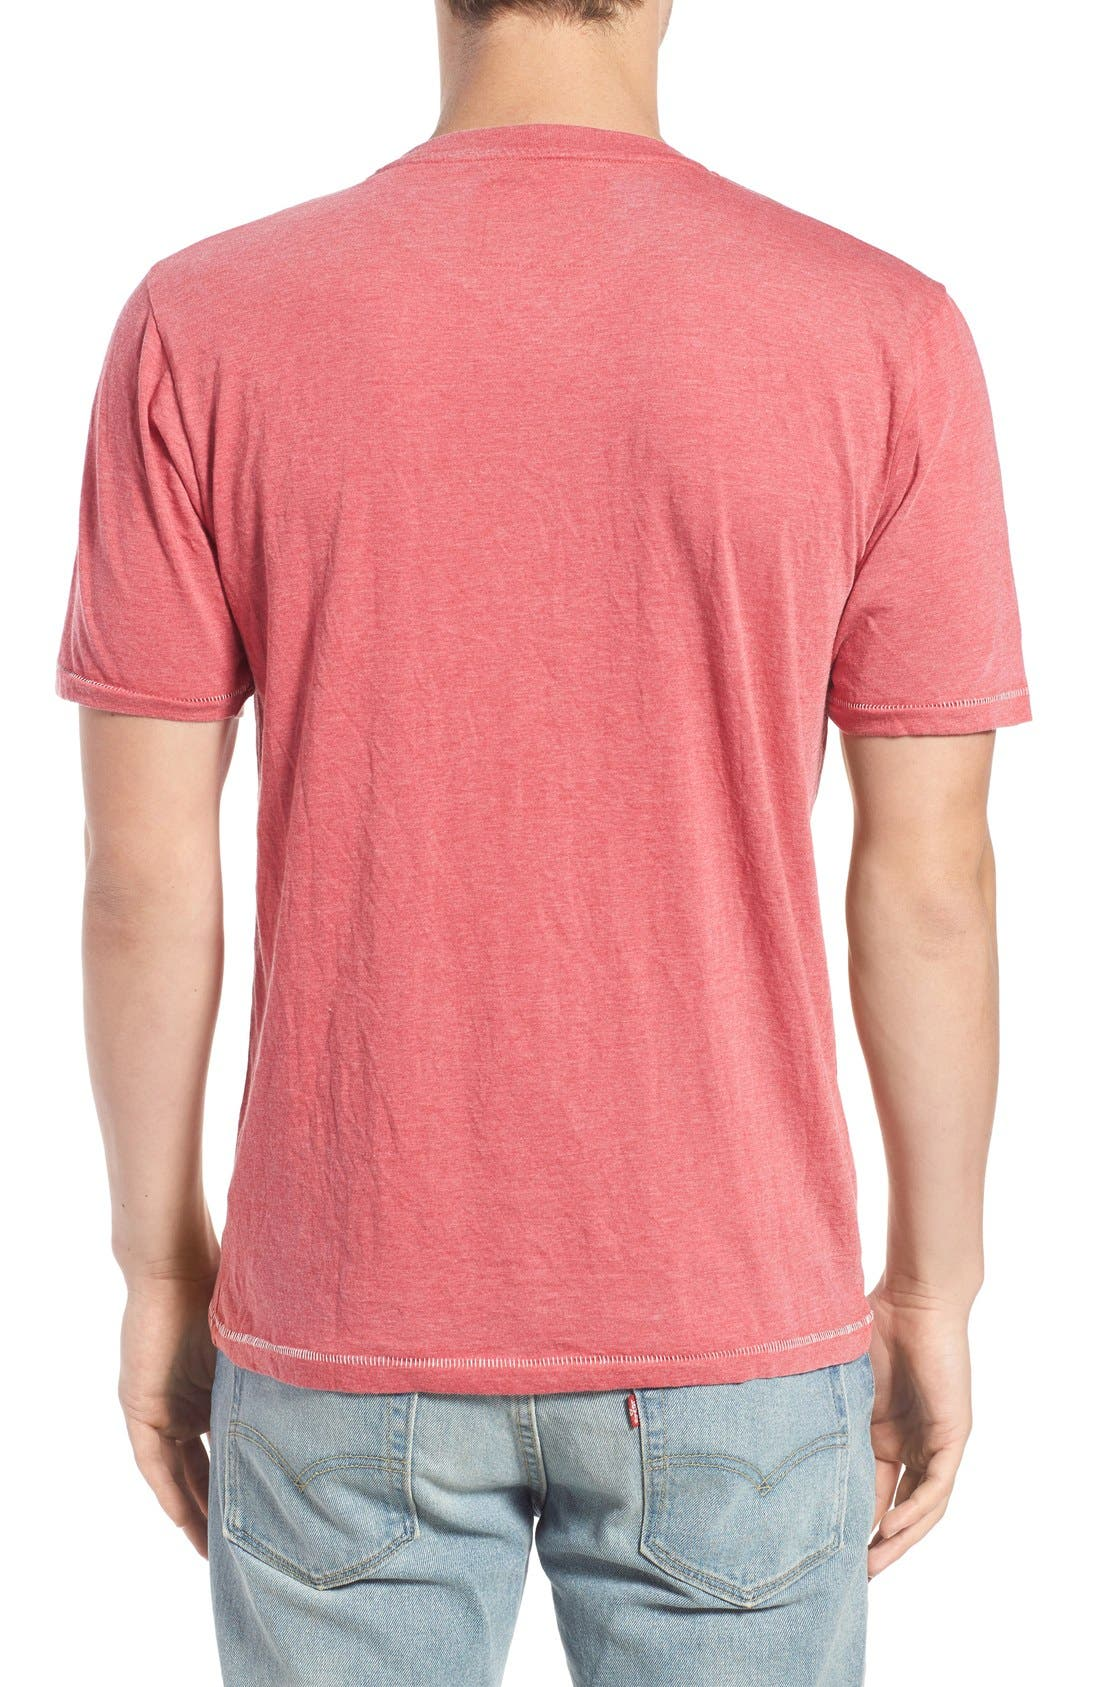 Alternate Image 2  - Red Jacket 'California Angels' Graphic V-Neck T-Shirt